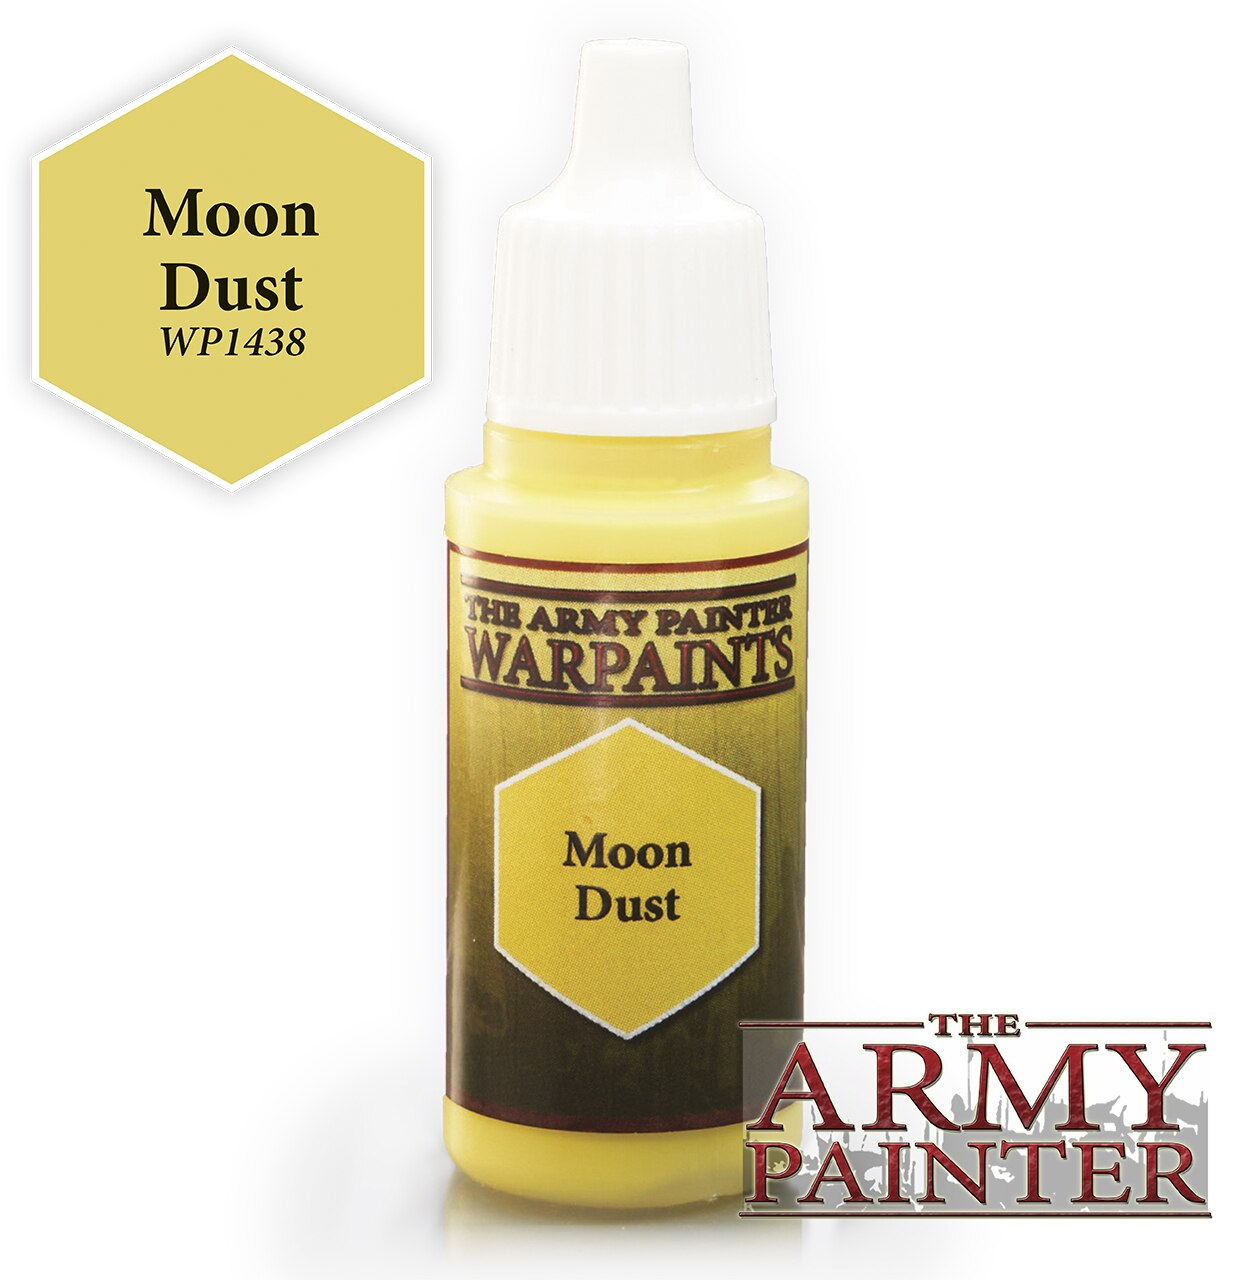 Army Painter Warpaint - Moon Dust